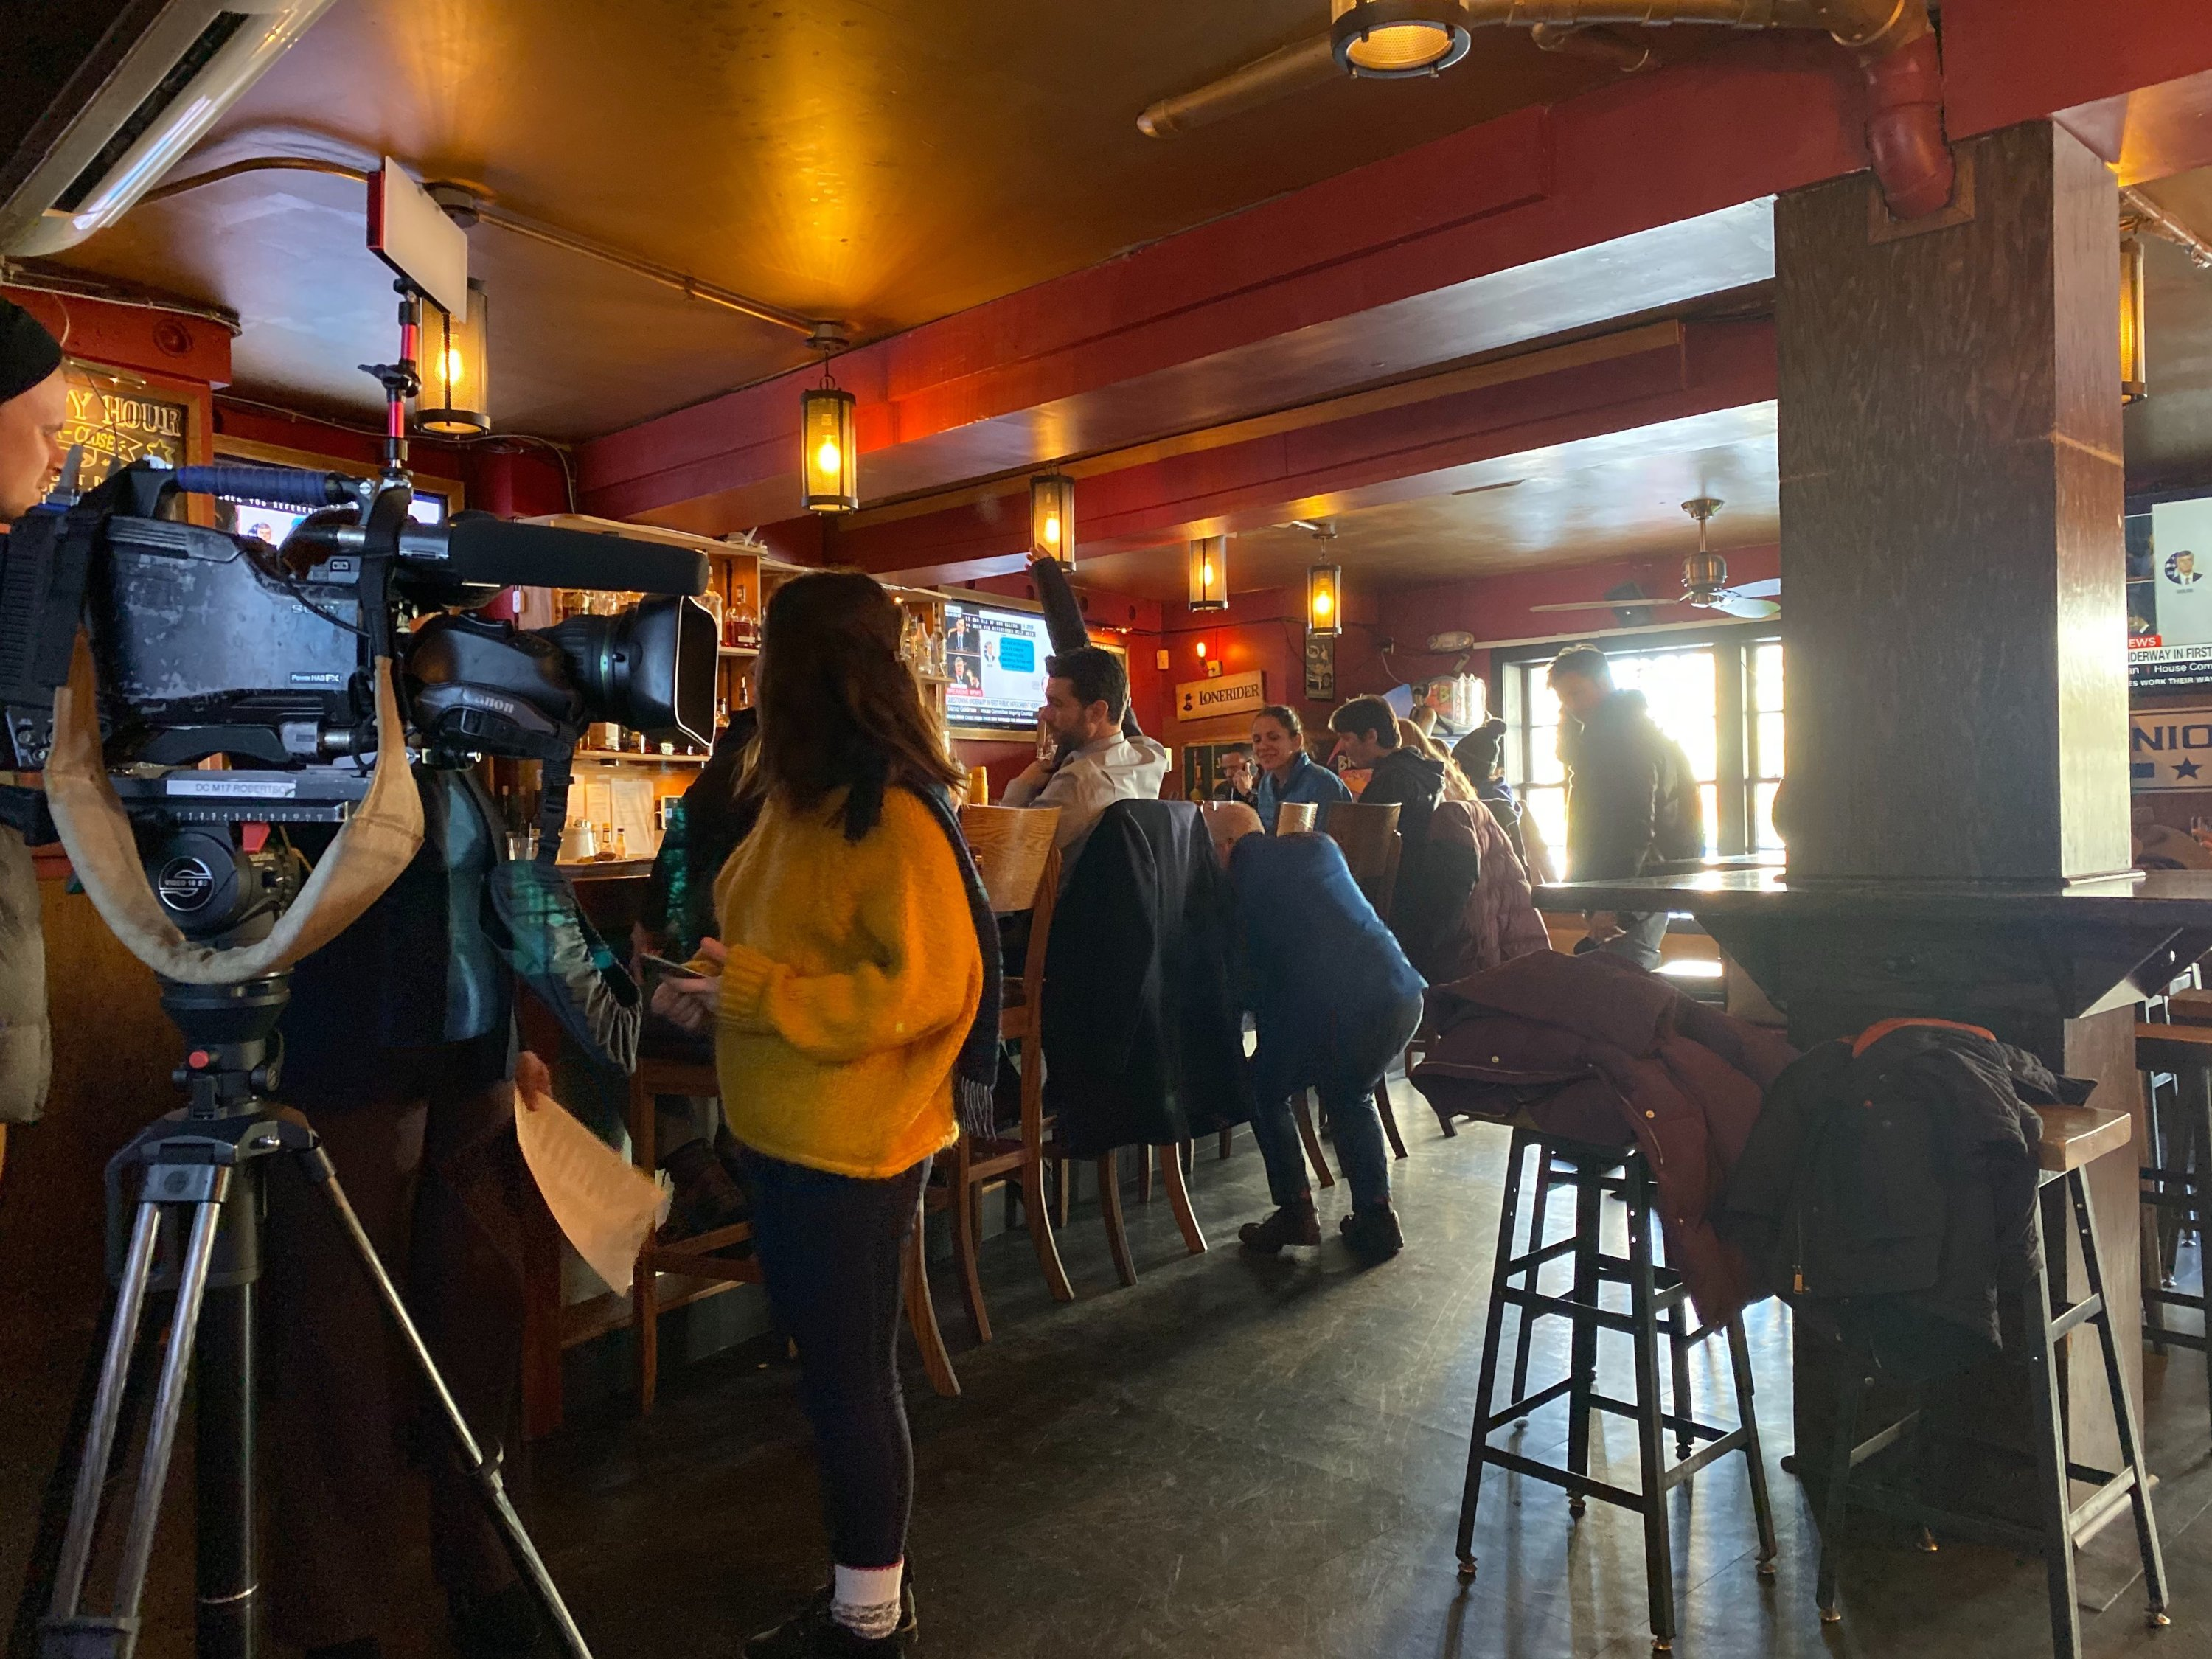 Union Pub's Impeachment Hearing Drink Specials Are Now Specifically For Journalists